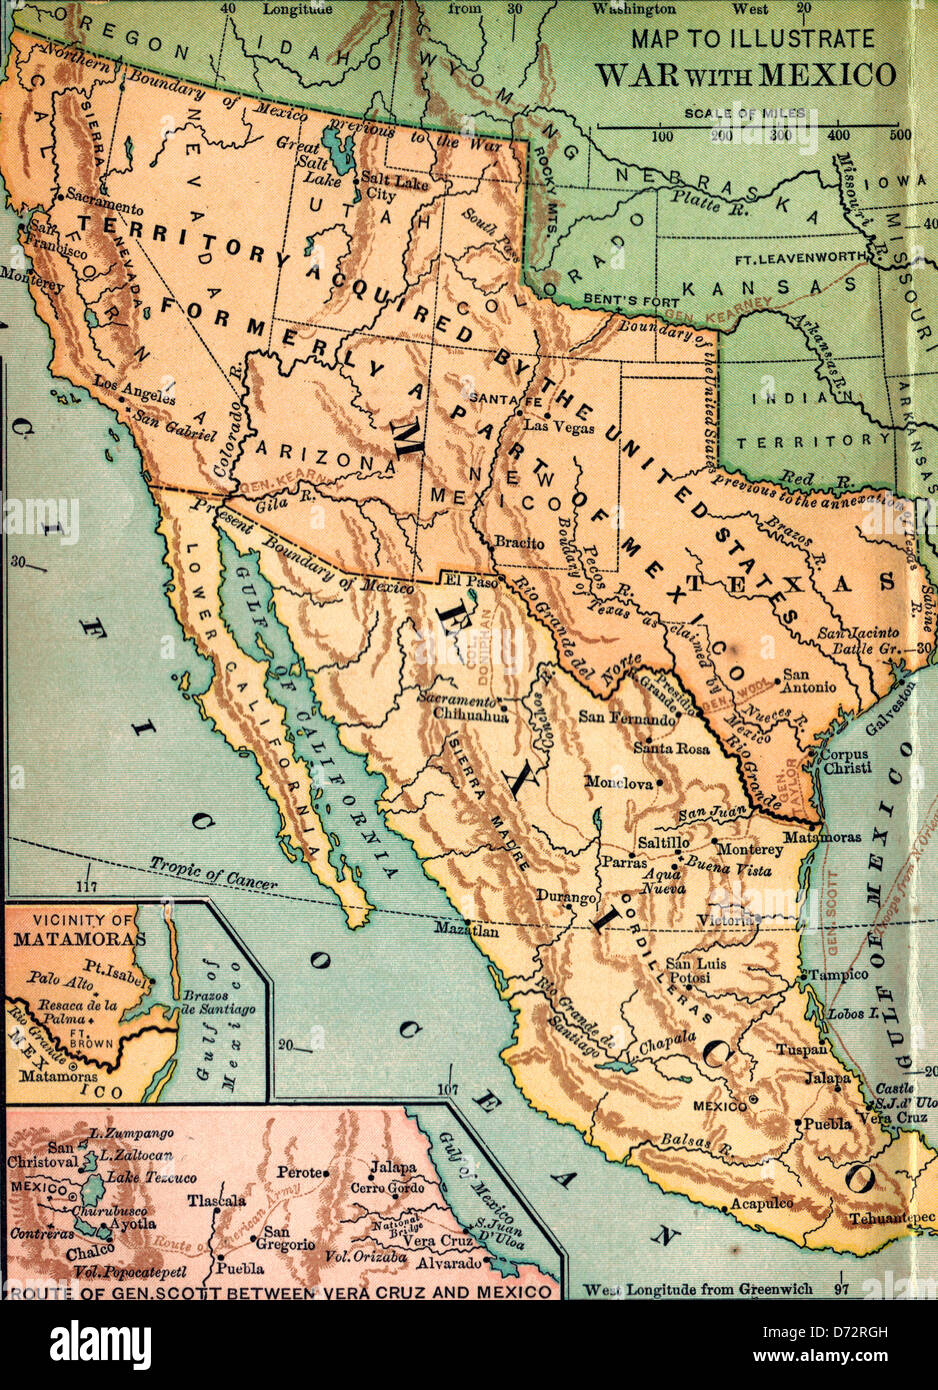 Map to illustrate USA War with Mexico 1846 - 1848.